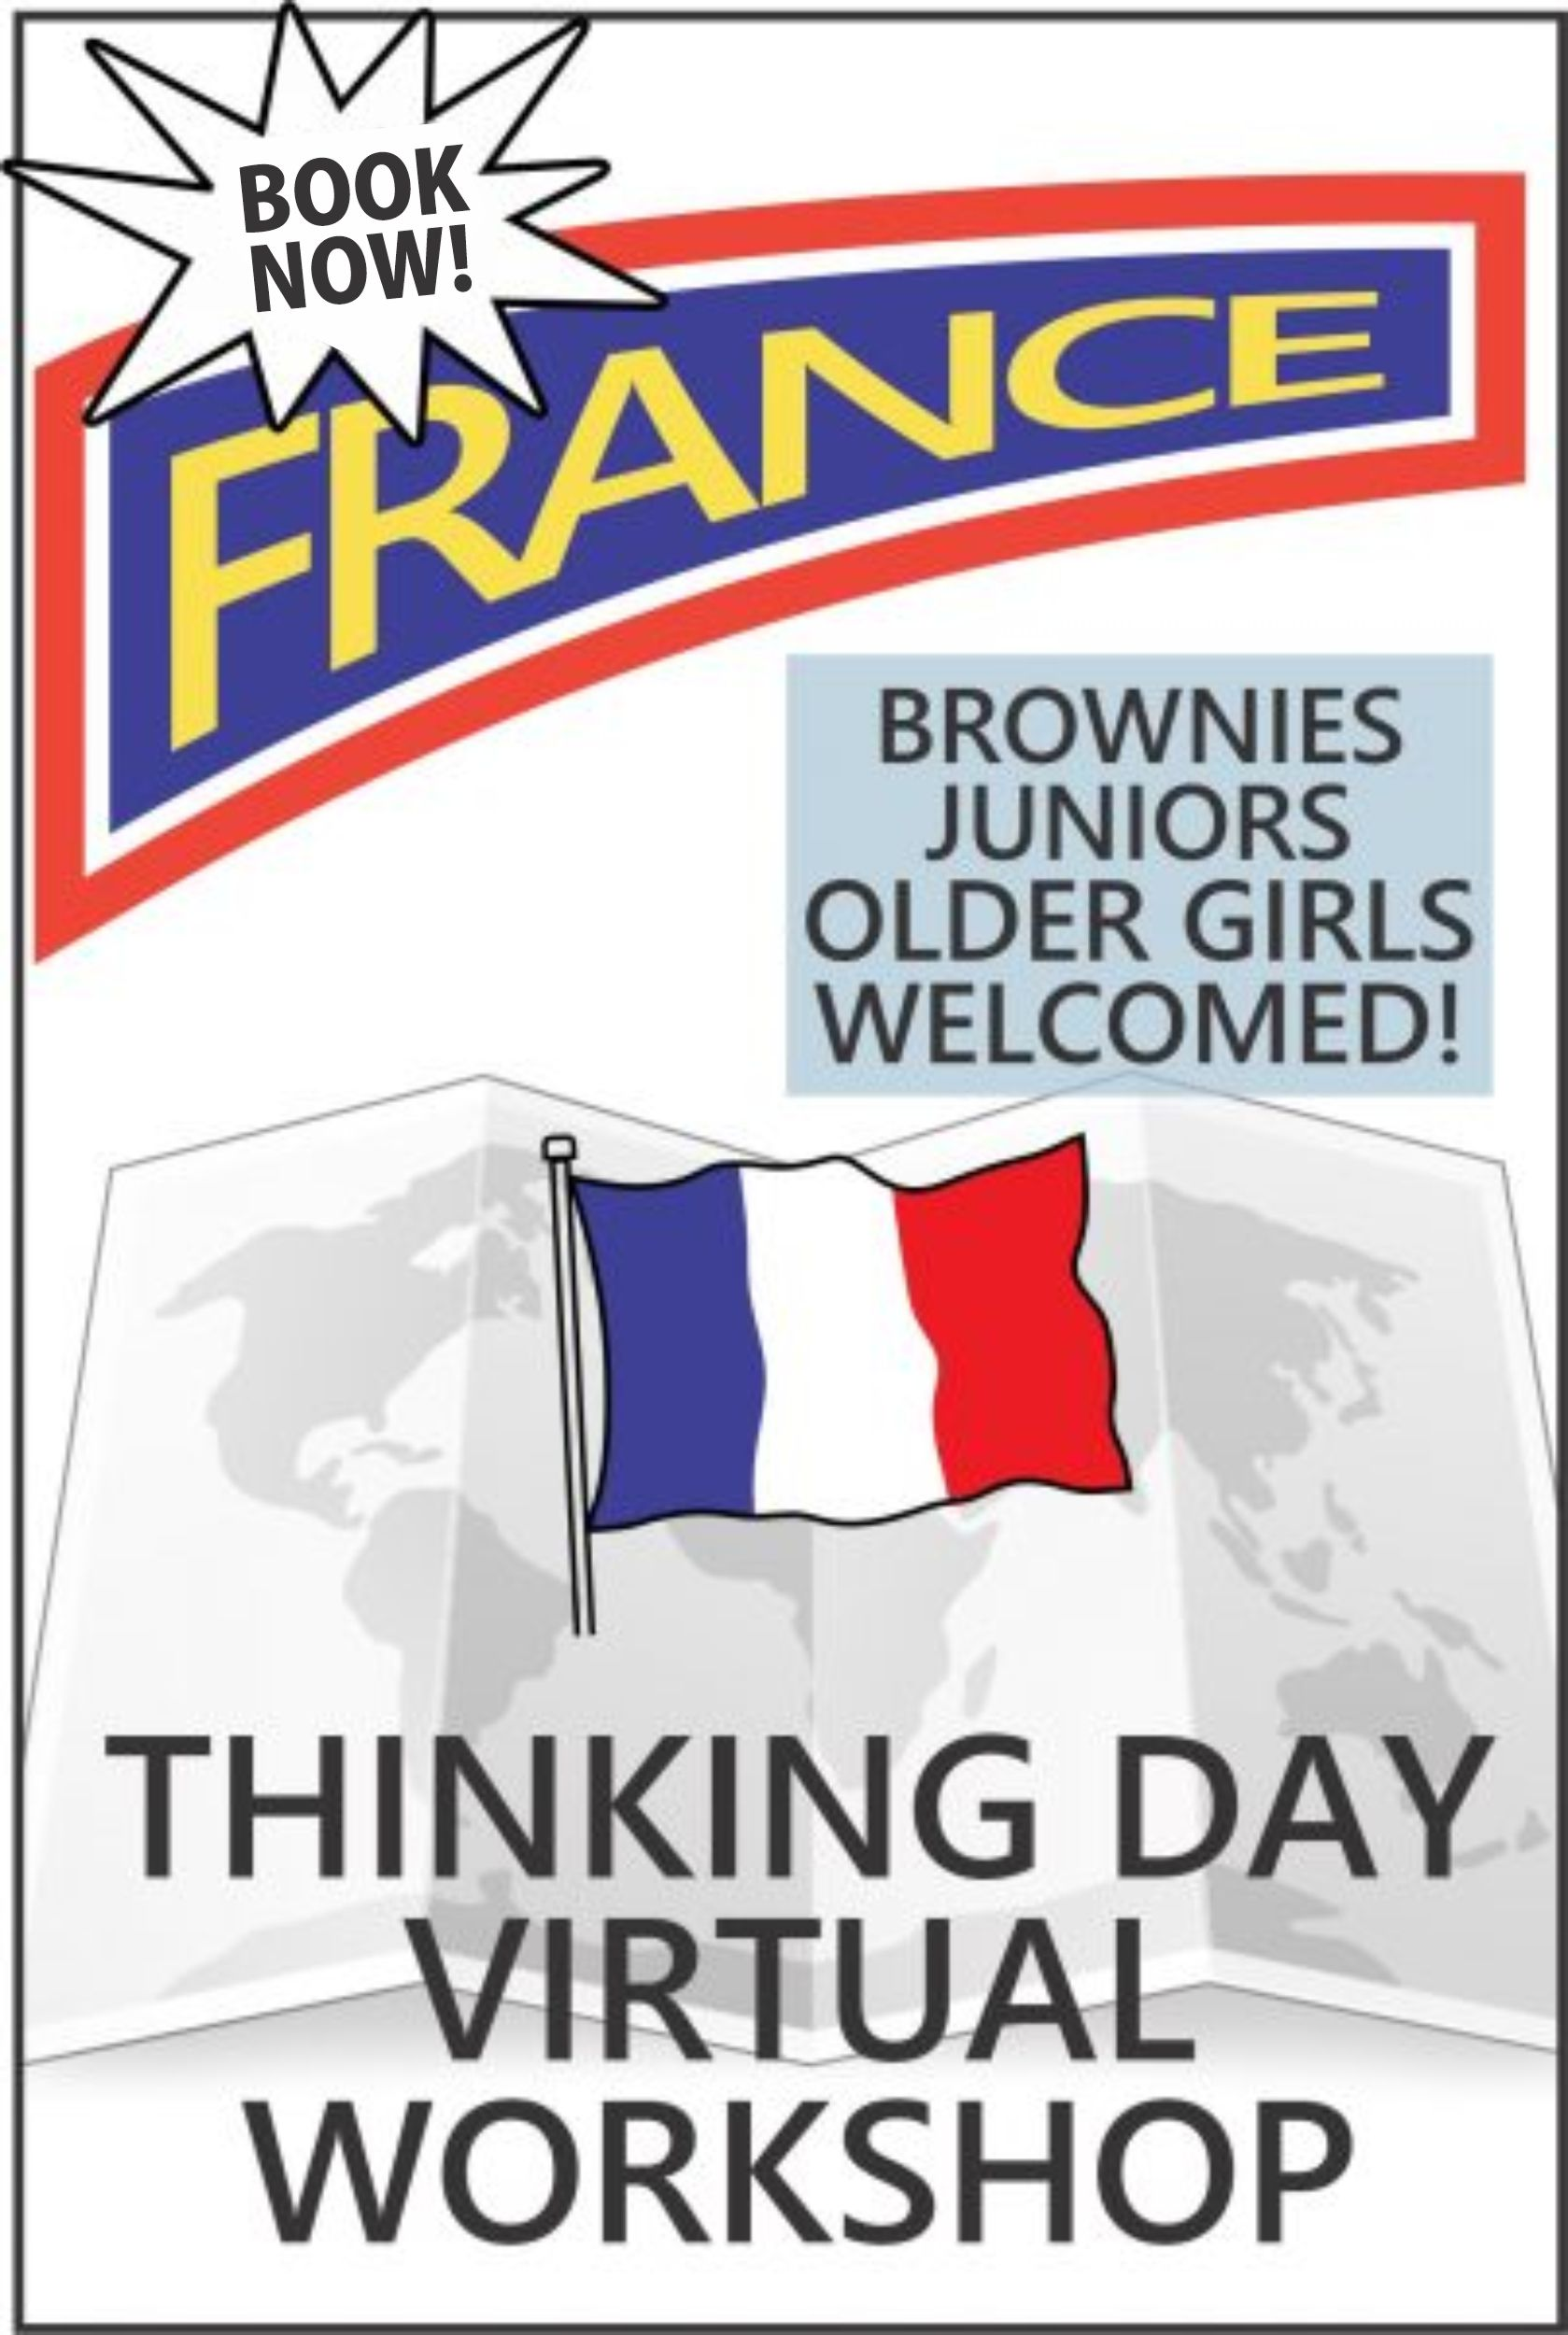 Explore French traditions, food, clothing, customs, and more in this 1-hour virtual workshop. The price includes supplies and an embroidered patch. #france #makingfriends #french #onlineworkshop #virtualworkshop #thinkingday #funpatch #francepatch via @gsleader411